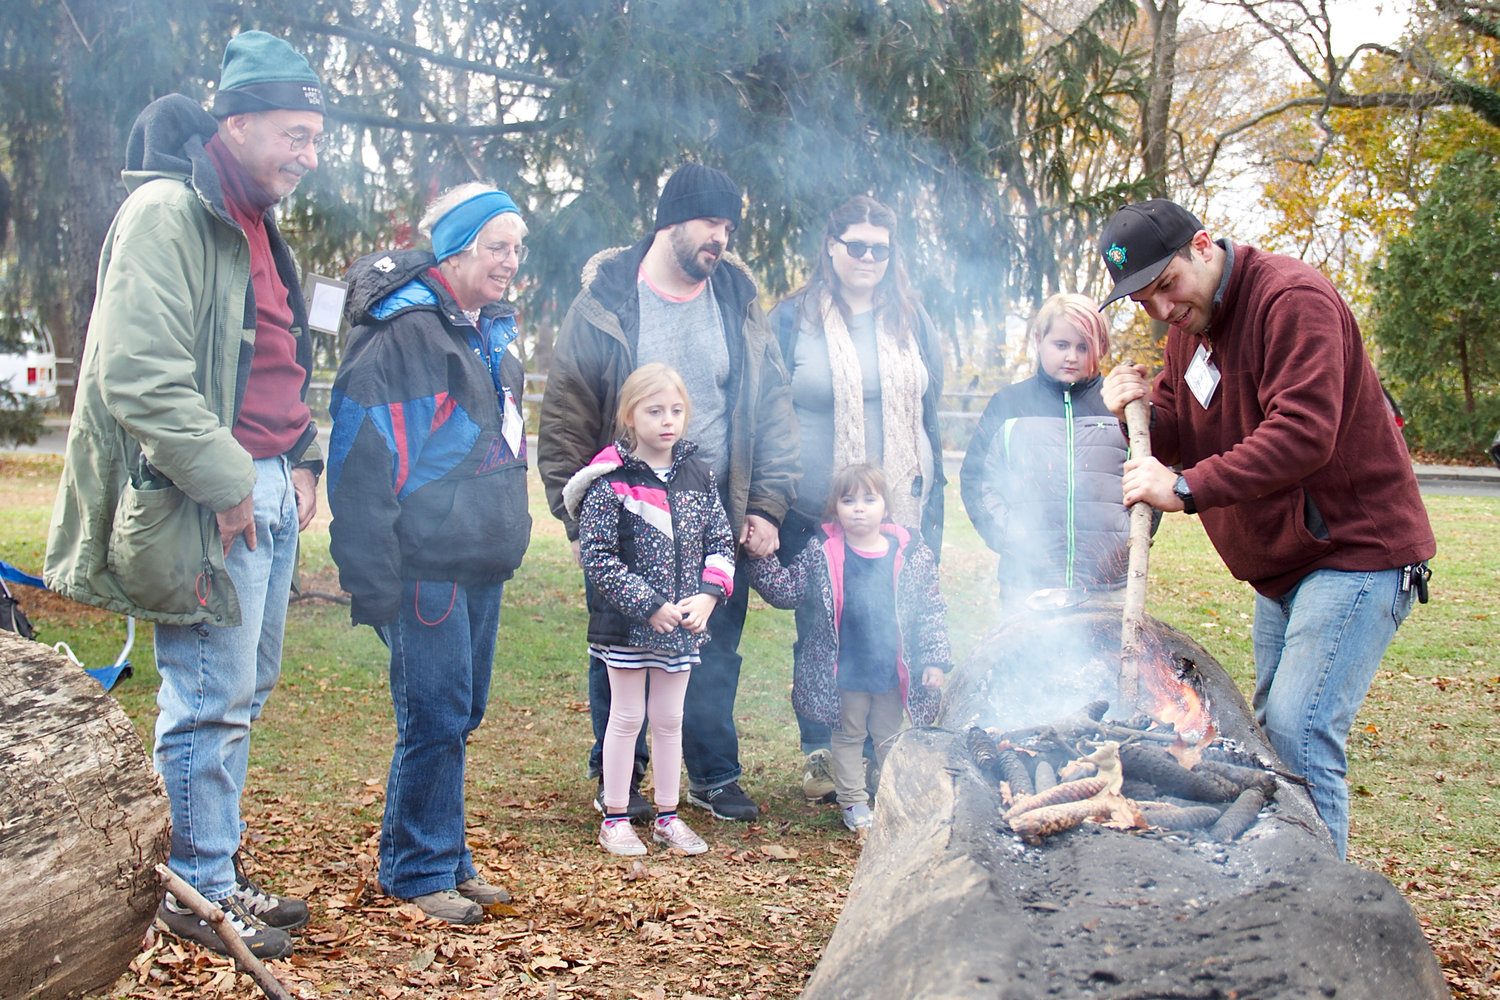 Visitors watched volunteer Steven Patrikis demonstrate how logs were burned and carved out for canoes at the annual Native American Feast at Garvies Point Museum and Preserve.